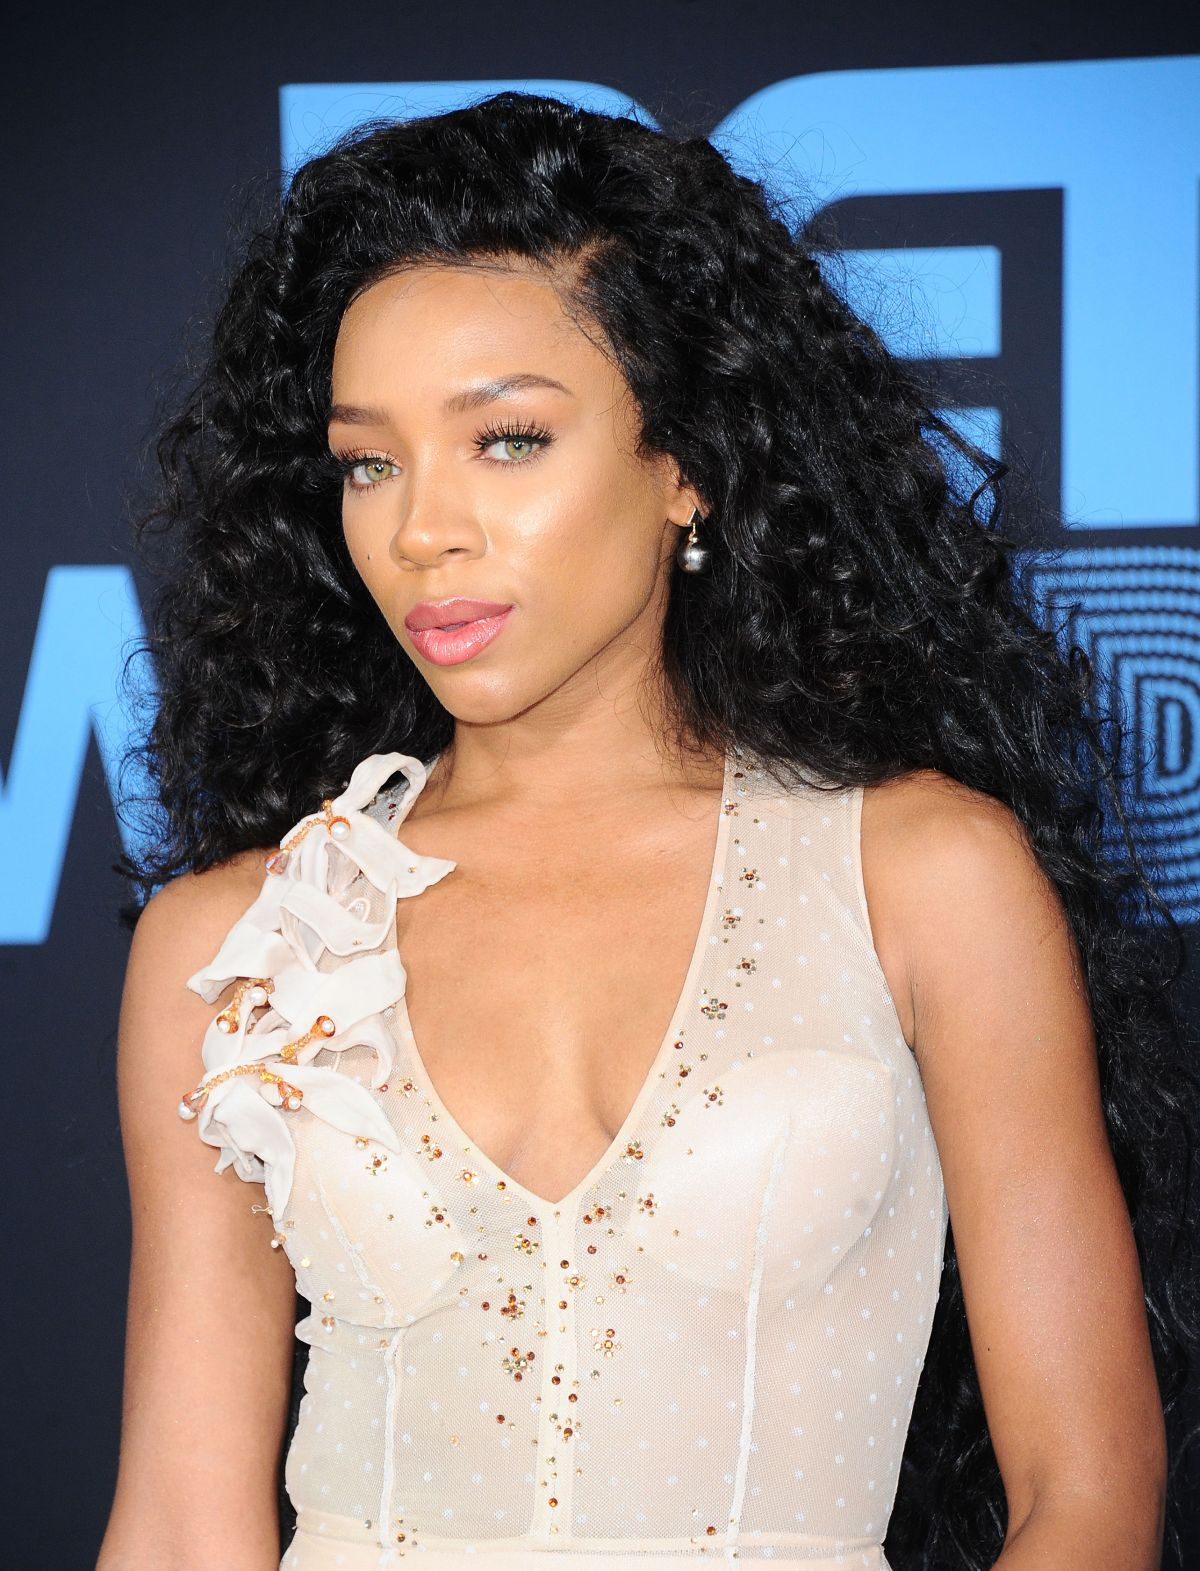 LIL' MAMA at BET Awards 2017 in Los Angeles 06/25/2017 ...